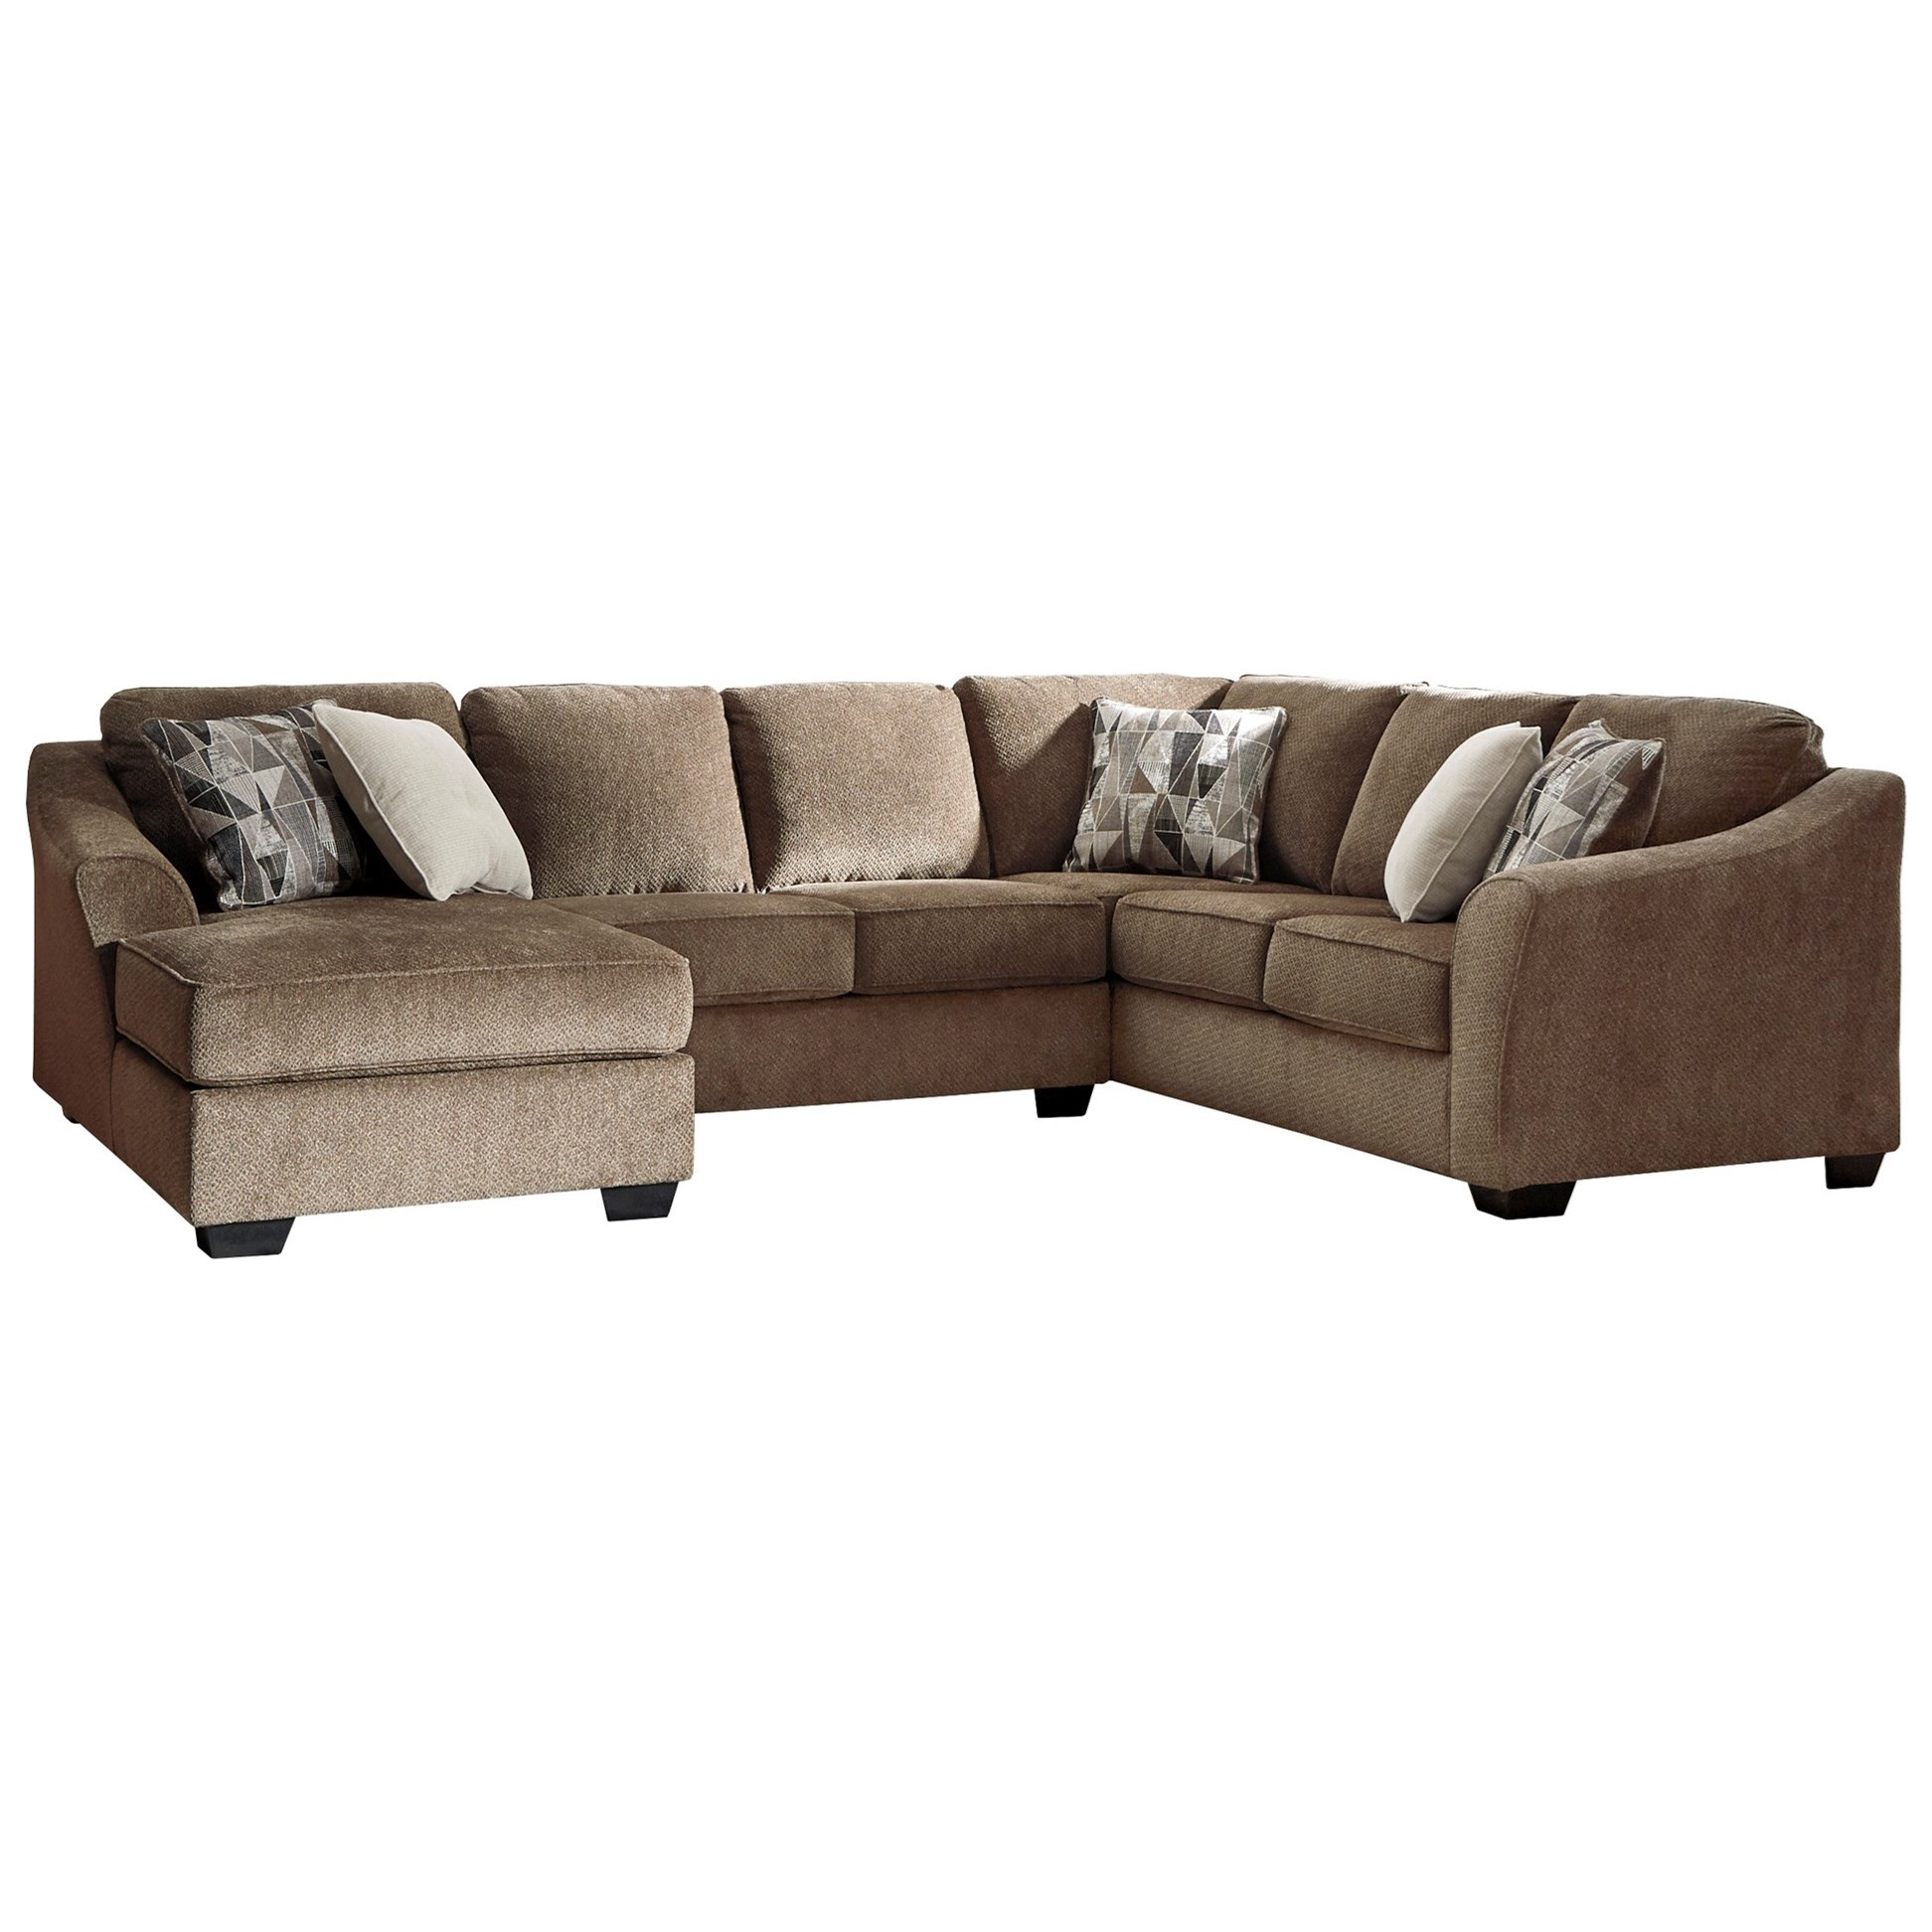 Graftin 3-Piece Sectional by Benchcraft at Lapeer Furniture & Mattress Center